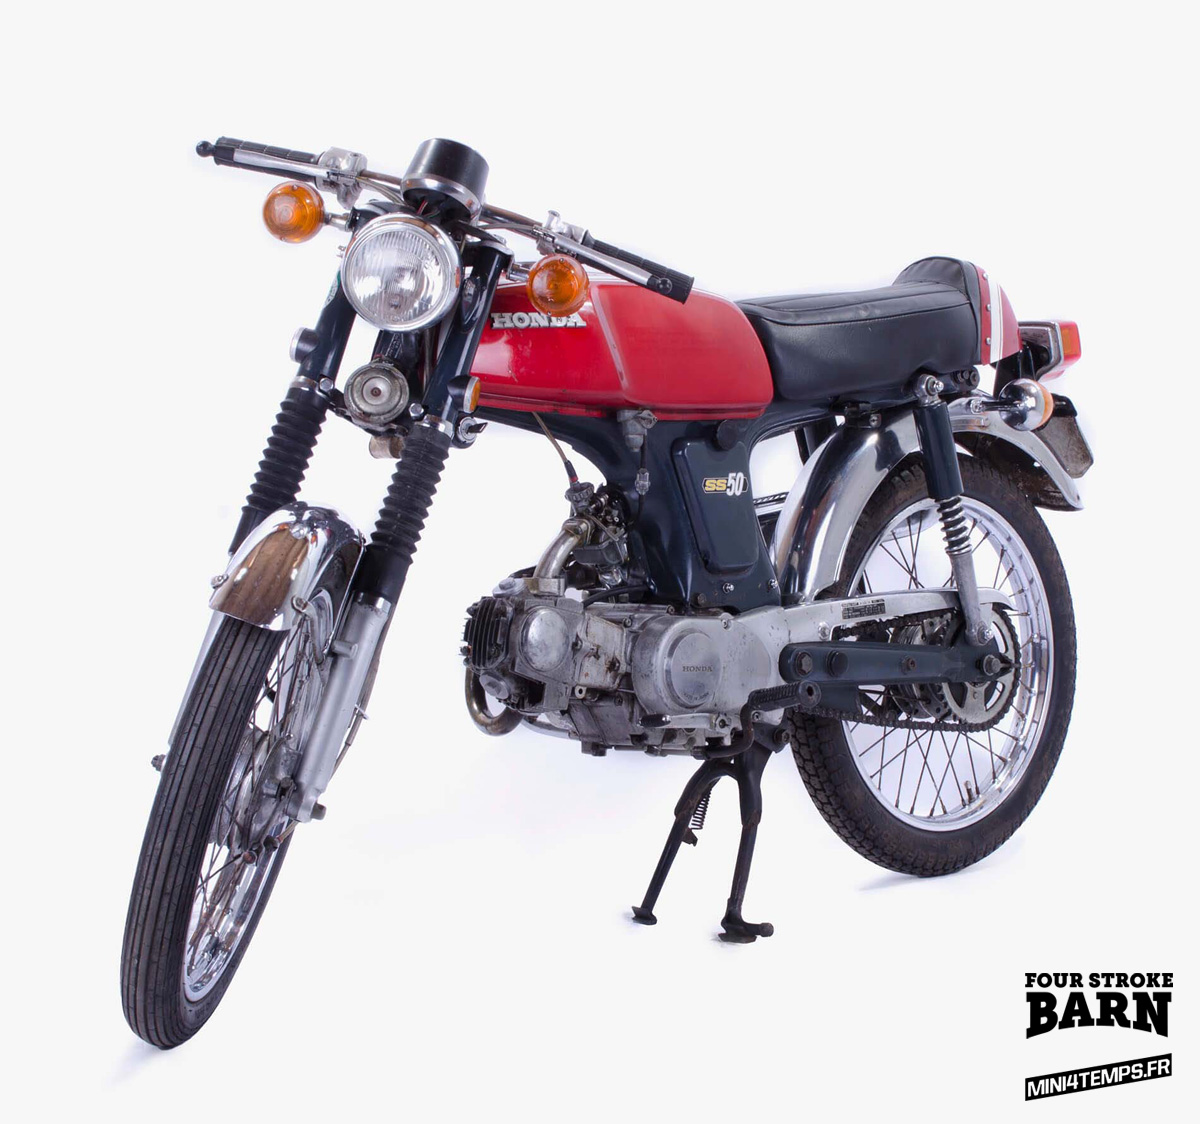 Le Honda SS50Z de Four Stroke Barn - mini4temps.fr